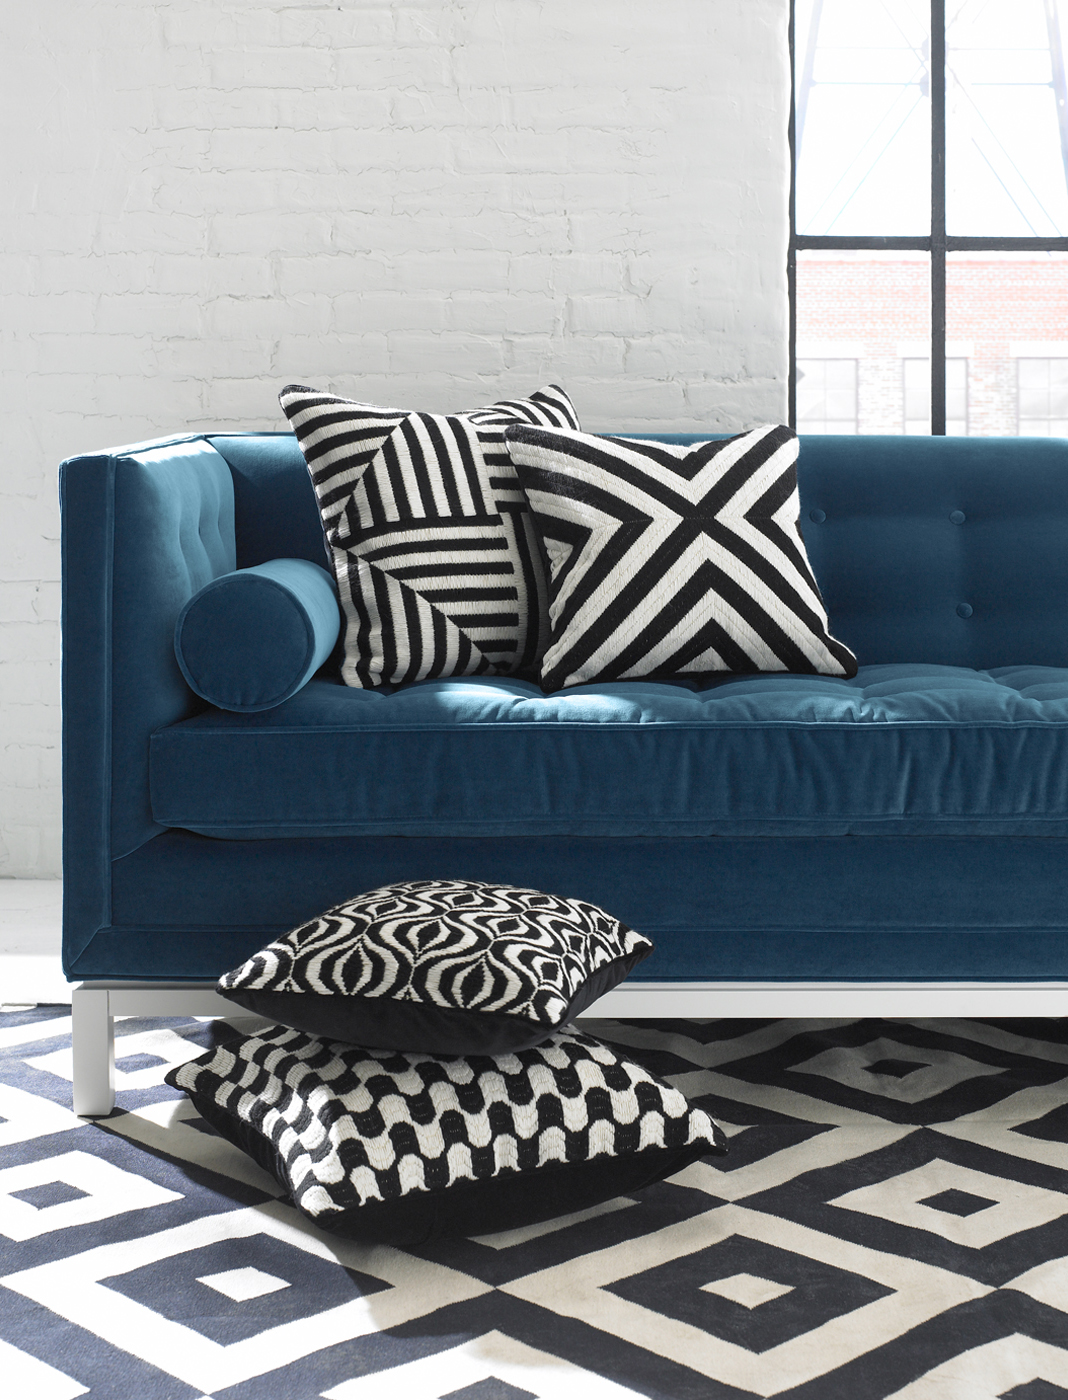 coco republic bring jonathan adler furniture to australia finally the interiors addict. Black Bedroom Furniture Sets. Home Design Ideas